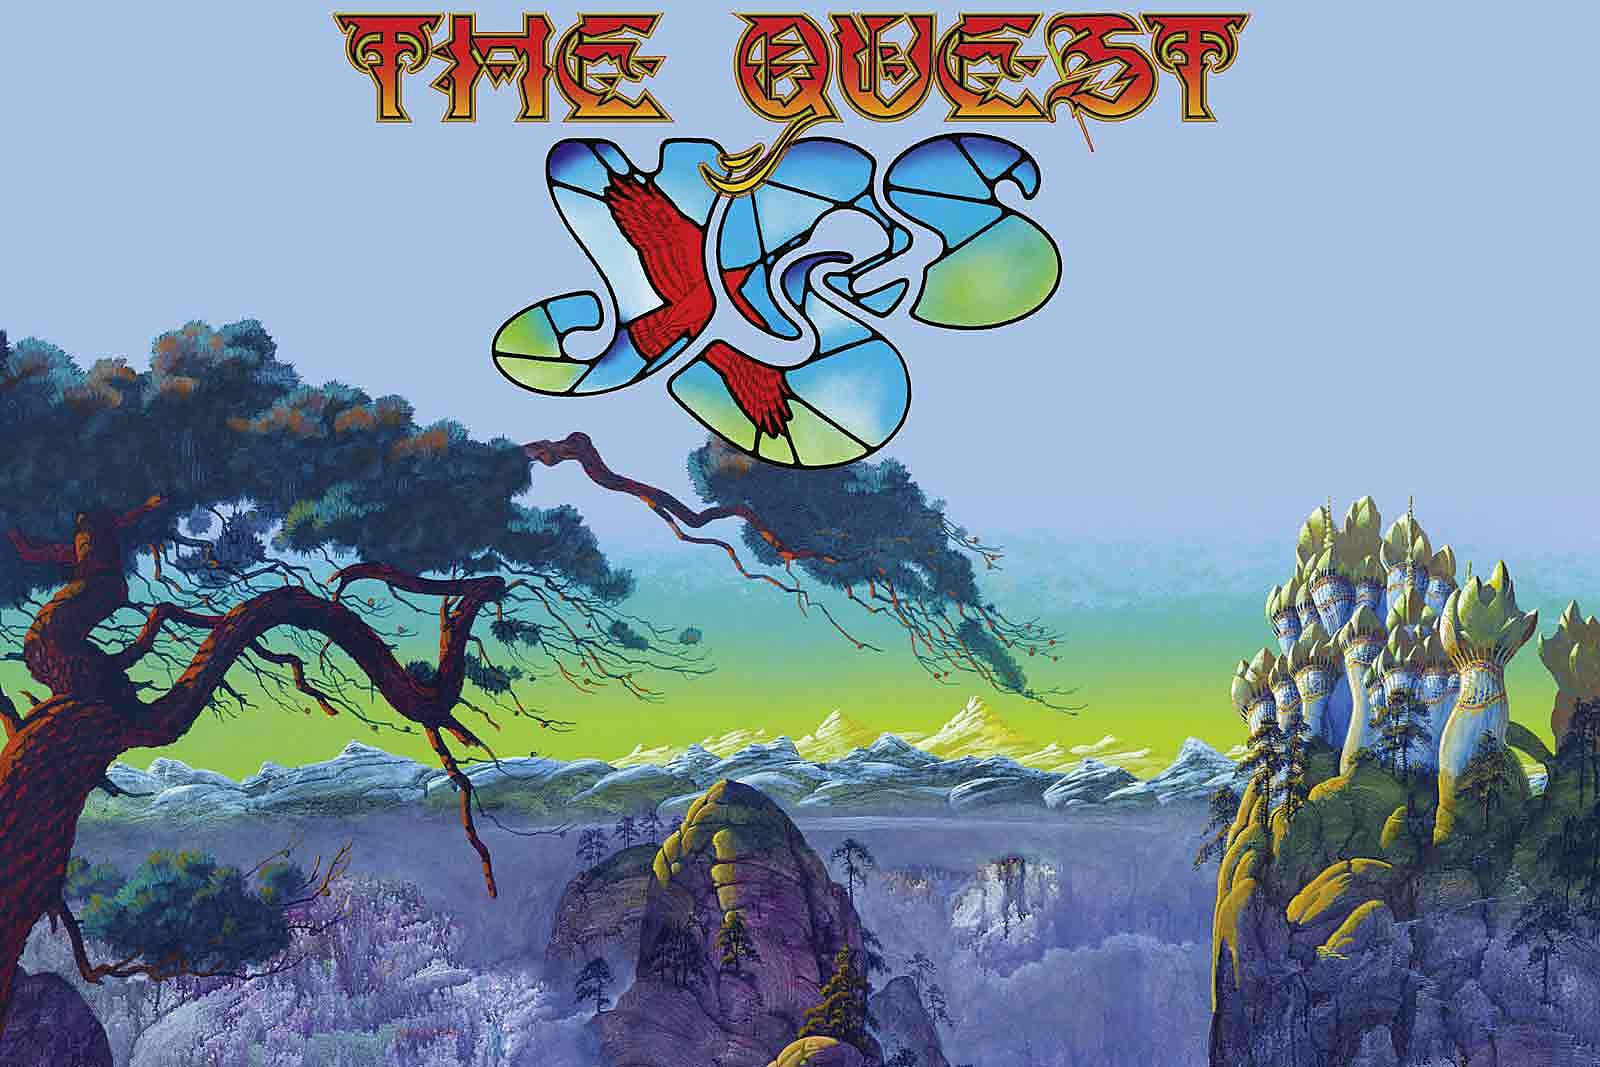 Yes, 'The Quest': Album Review